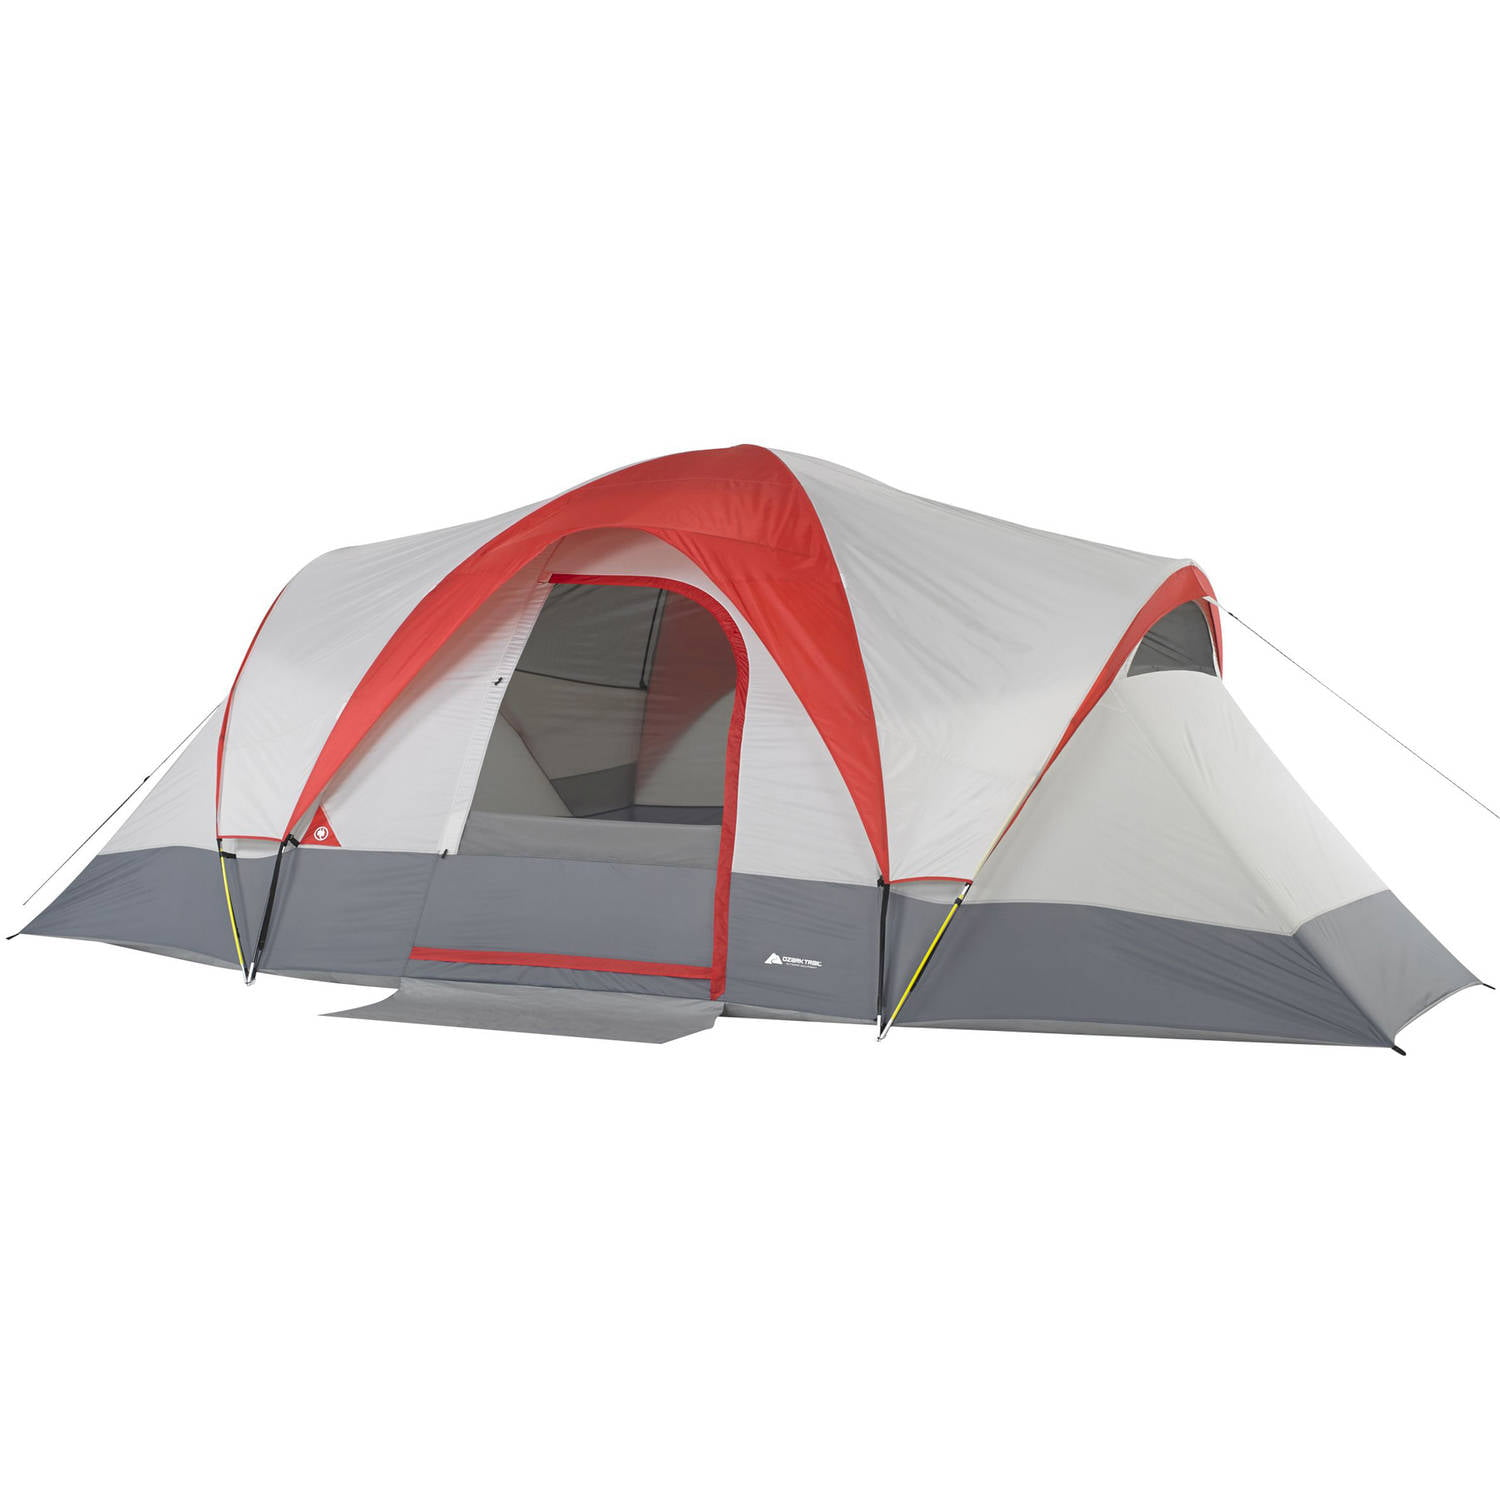 Ozark Trail Weatherbuster 9-Person Dome Tent by Campex (BD) Limited